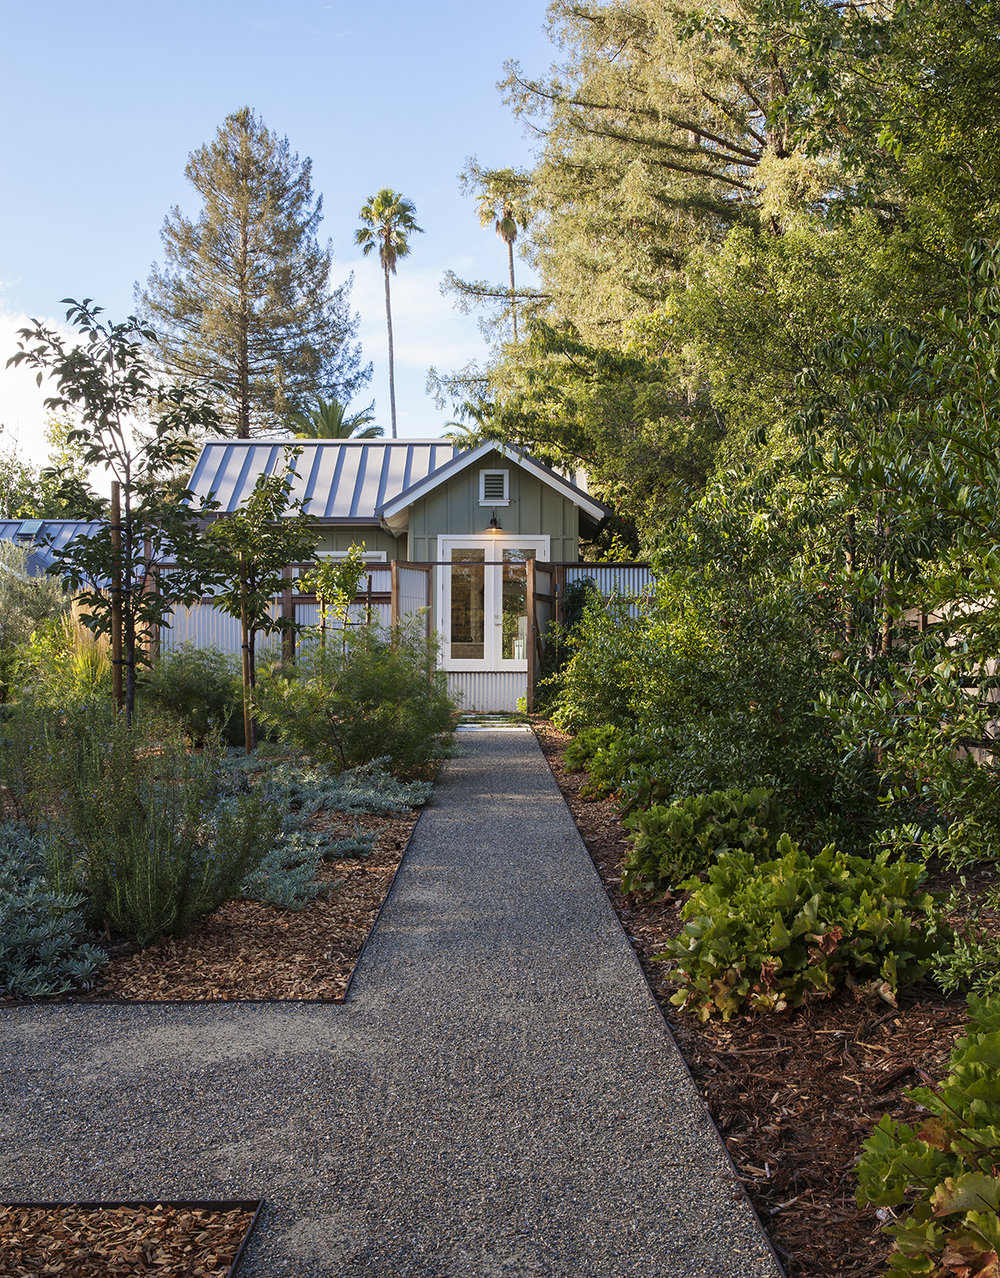 The gravel path is pleasantly crunchy to walk on, and leads up to the master bedroom patio.